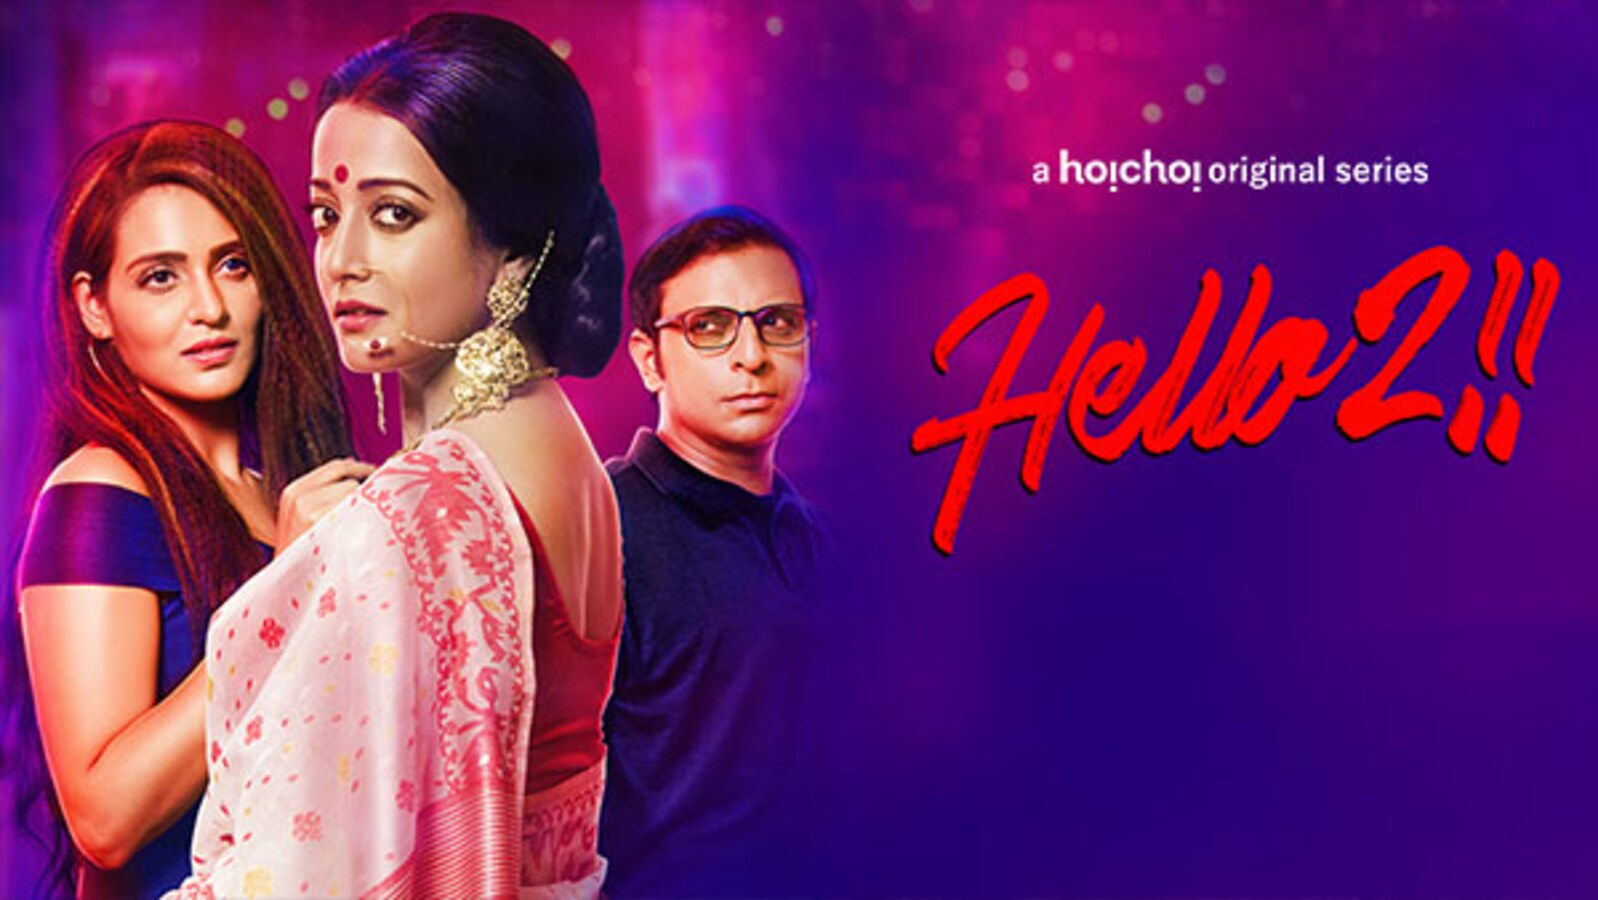 Hello (2018) Bangla HDRip Season 2 Complte  720P HDRip Download